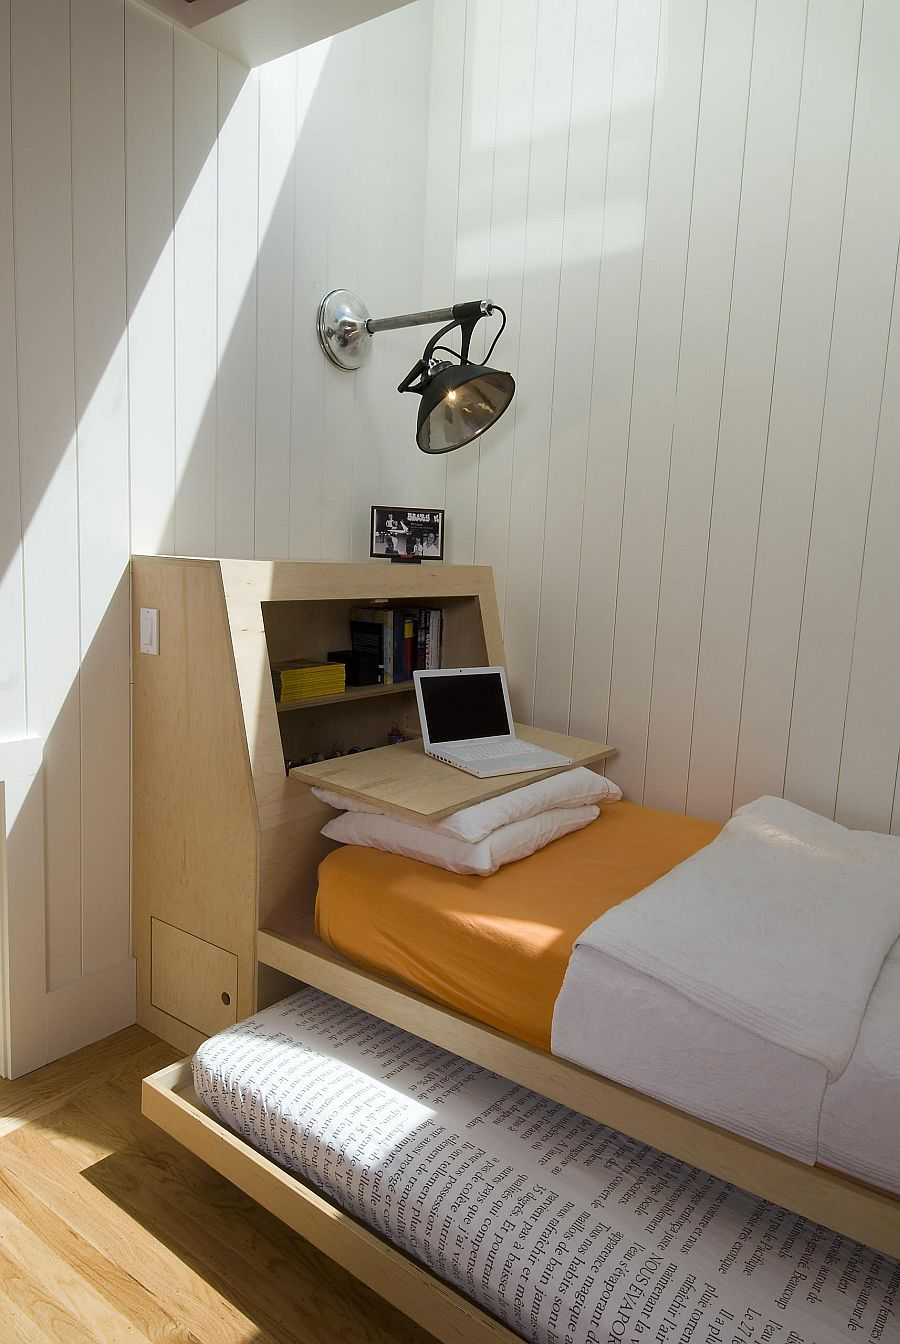 Combining-the-home-workspace-and-guest-room-using-a-cool-trundle-bed